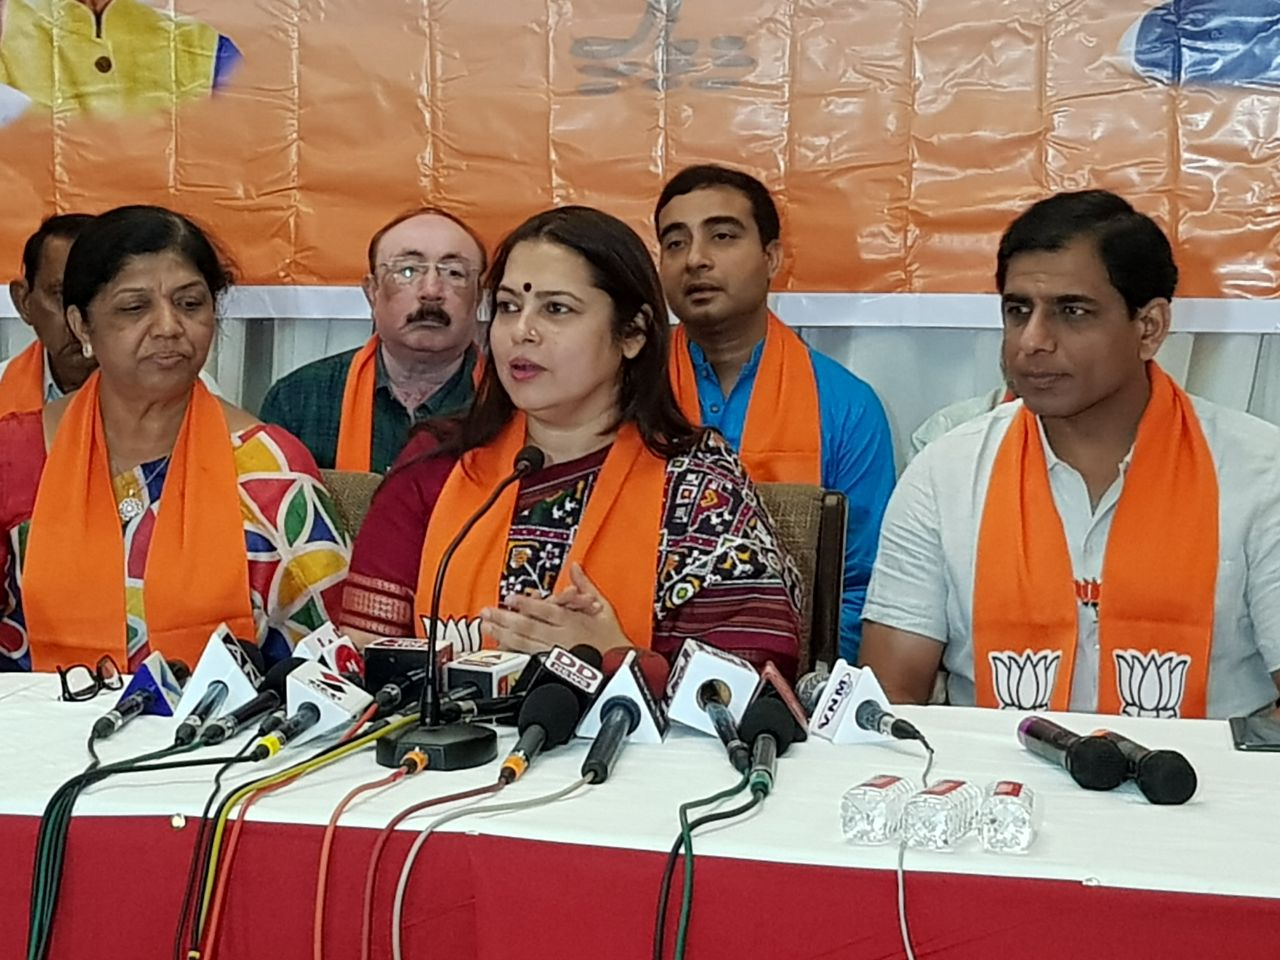 Congress is showing dream to Patidars, which is not possible as per the law says BJP spokesperson Meenakshi Lekhi